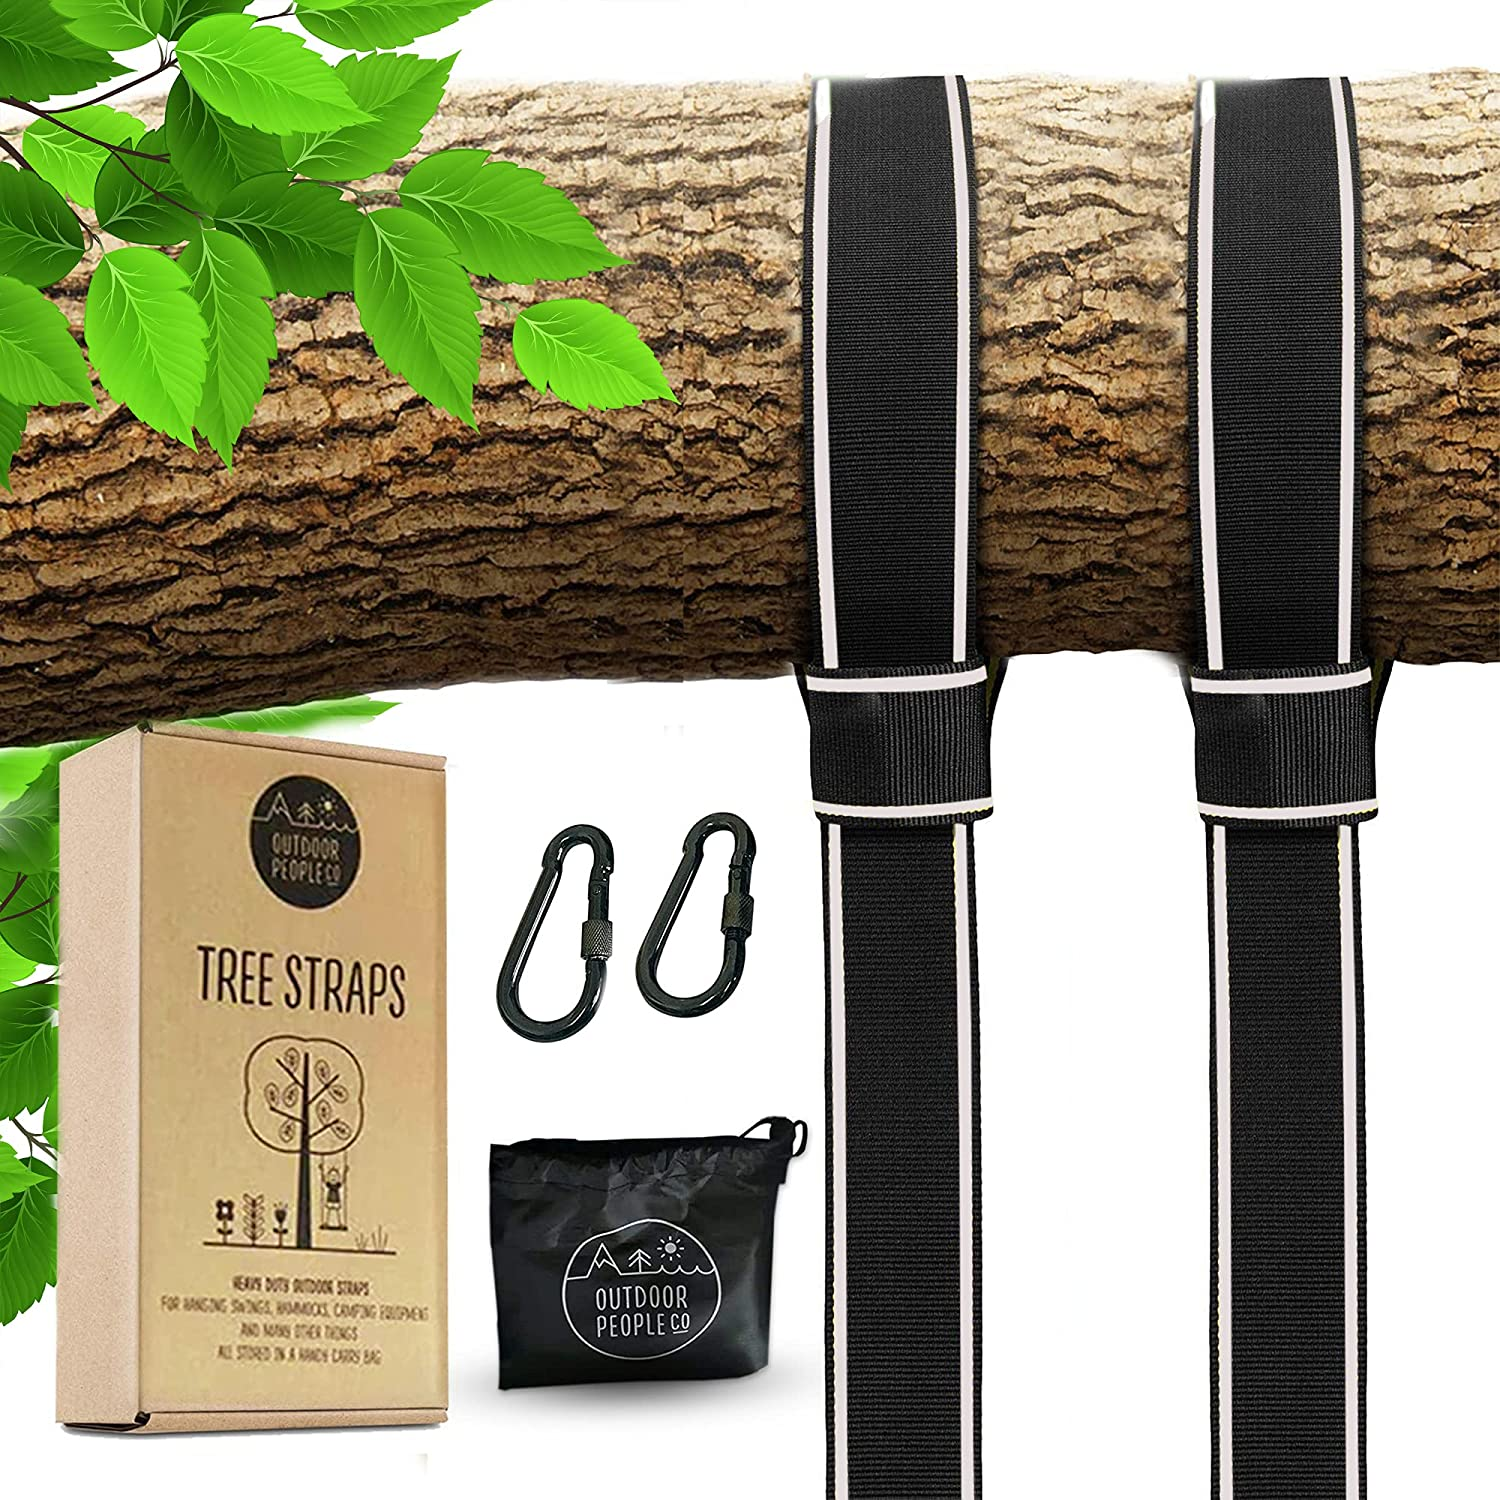 PRO Tree Swing List price Hanging kit by People Straps Outdoor i Co Safety and trust -2x10ft